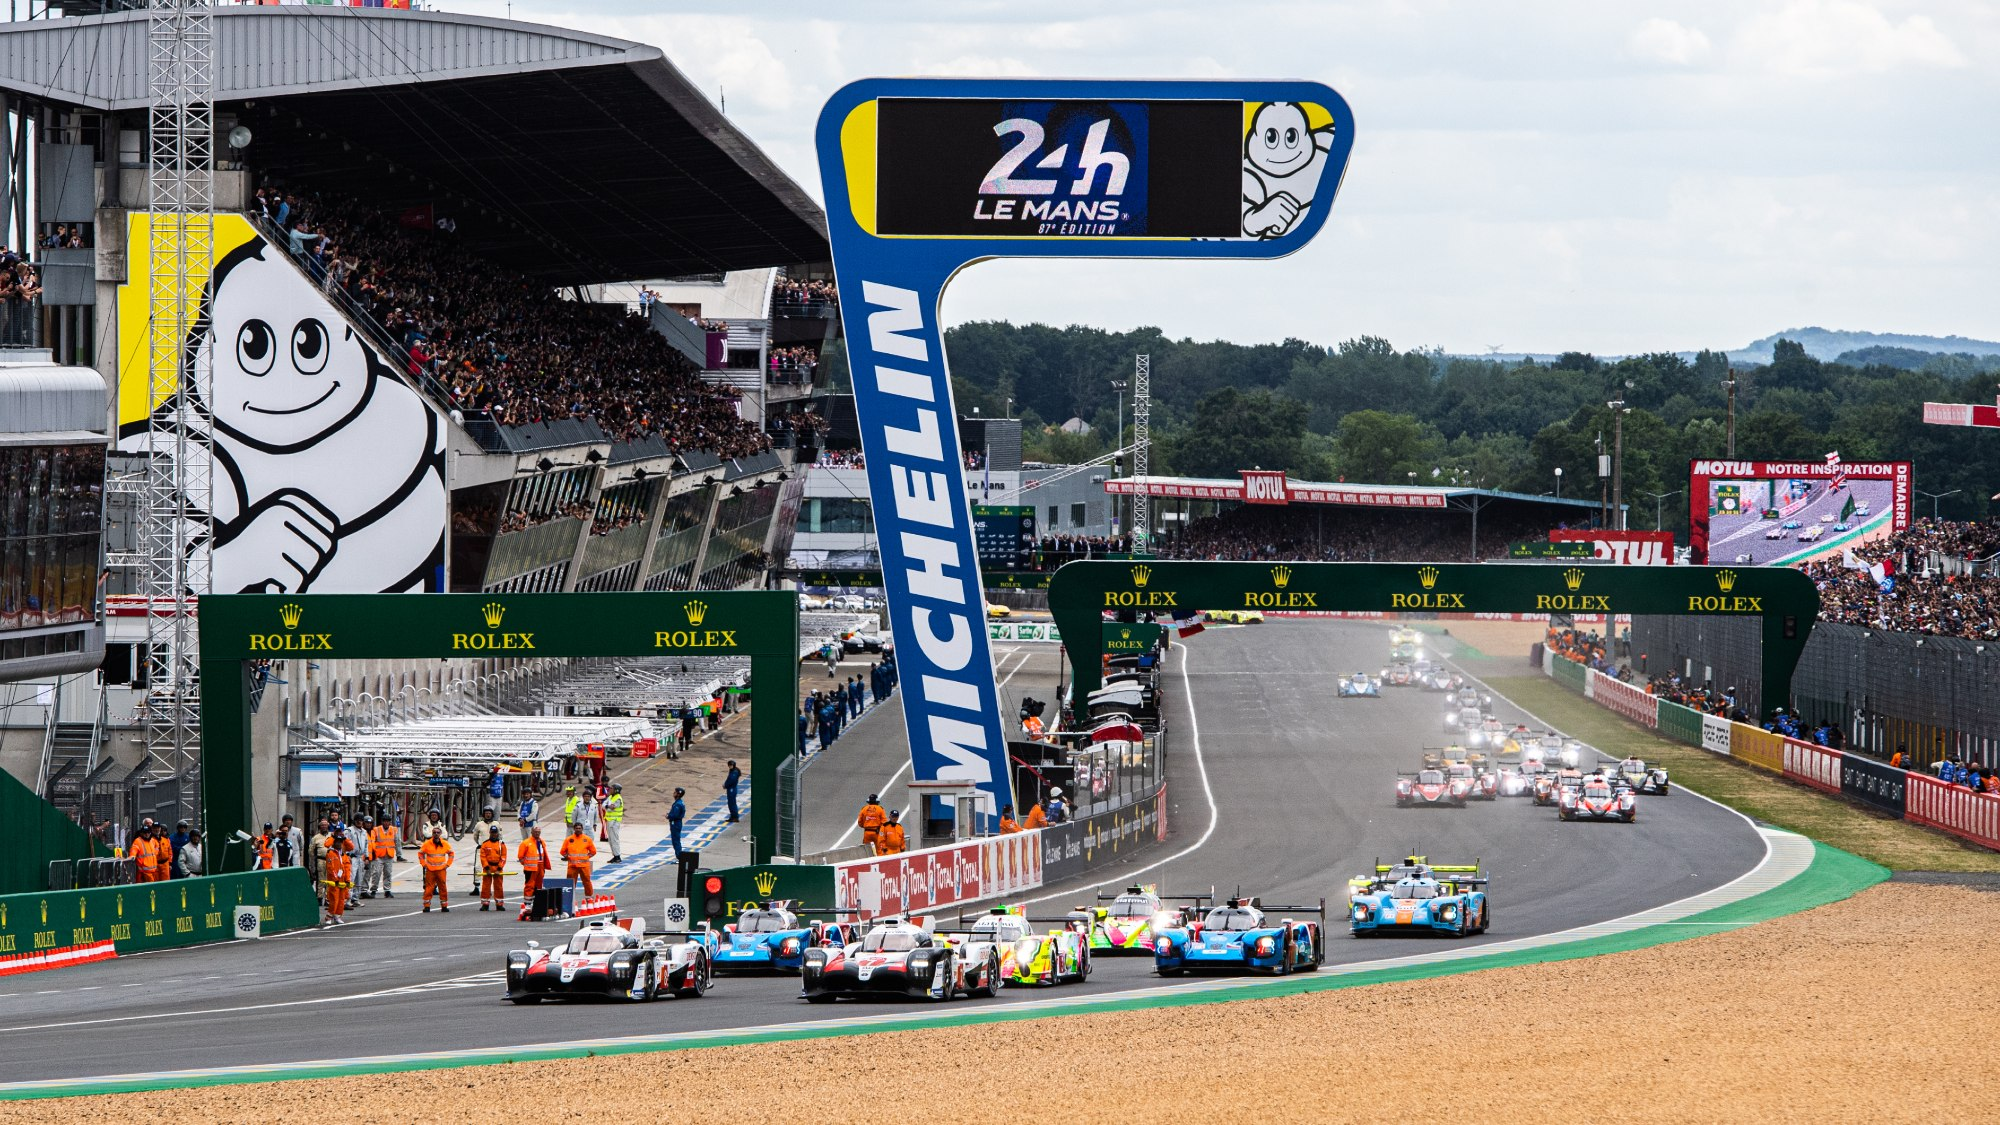 Start of 2019 Le Mans 24 Hours